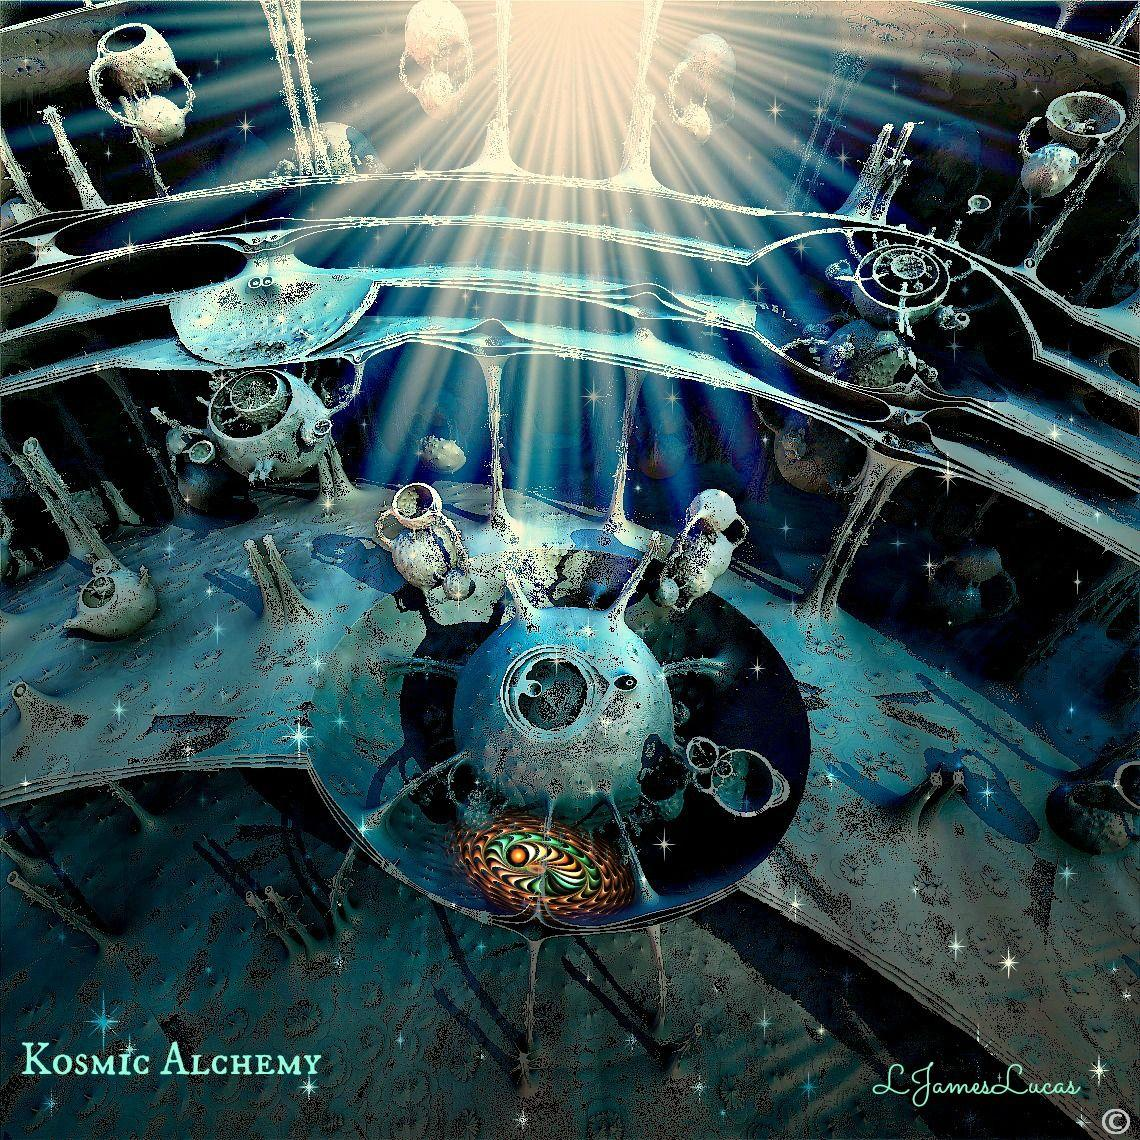 Kosmic Alchemy